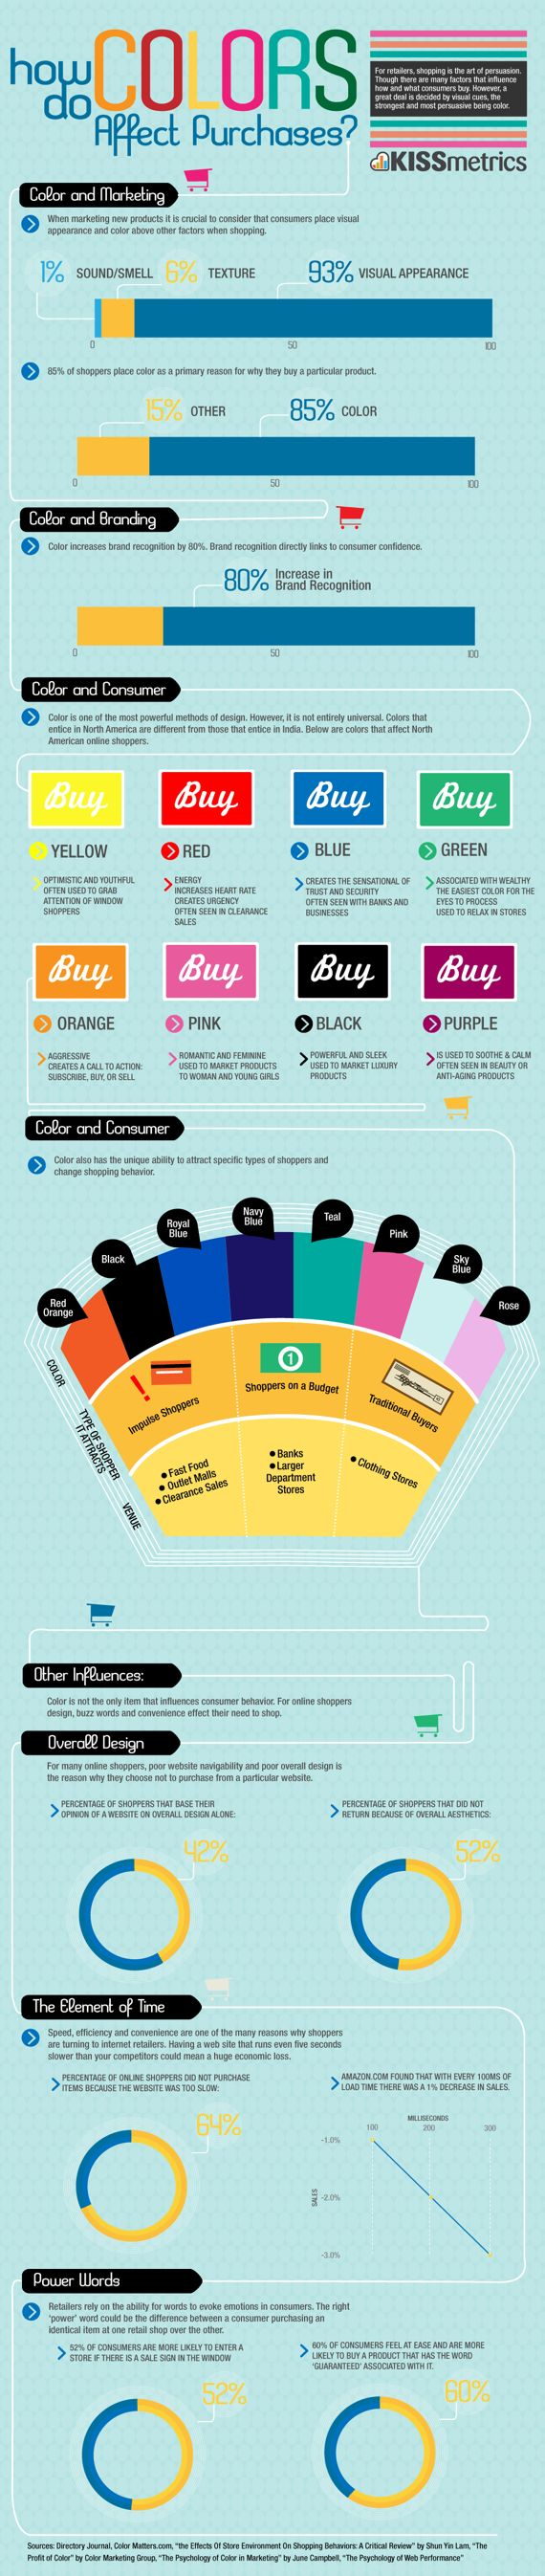 Colors and marketing - know your target audience